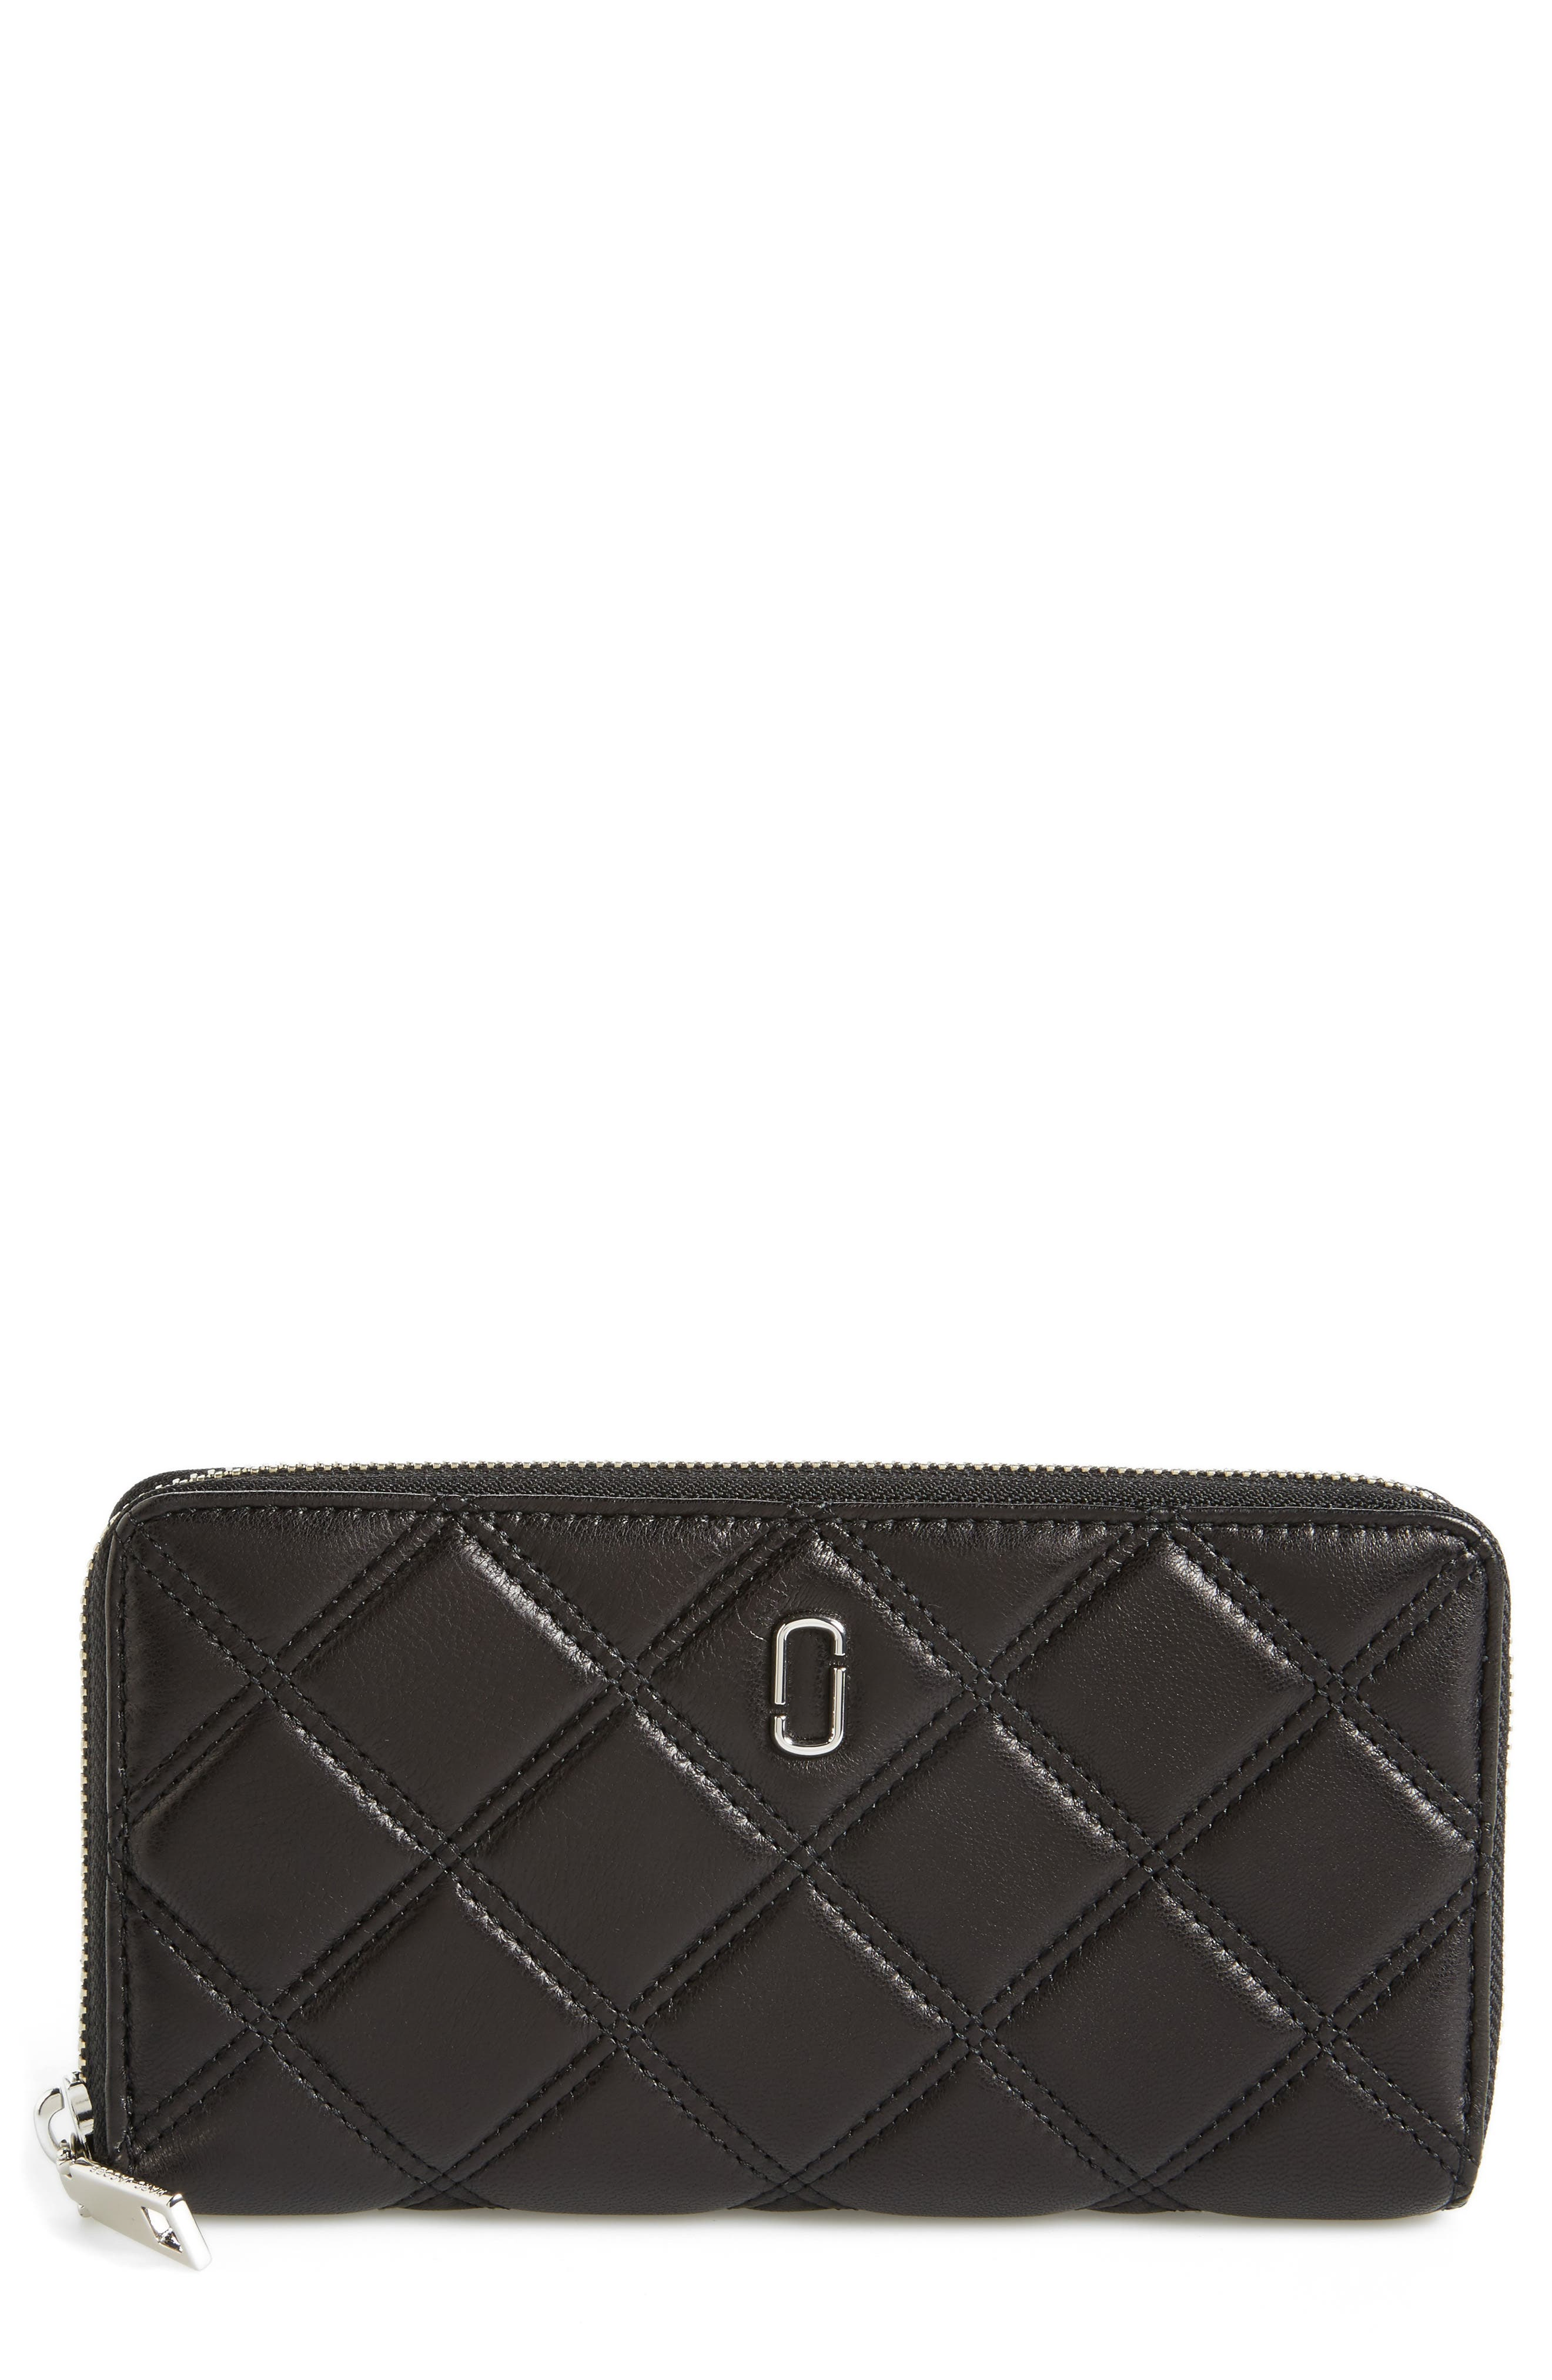 MARC JACOBS Quilted Leather Zip Wallet